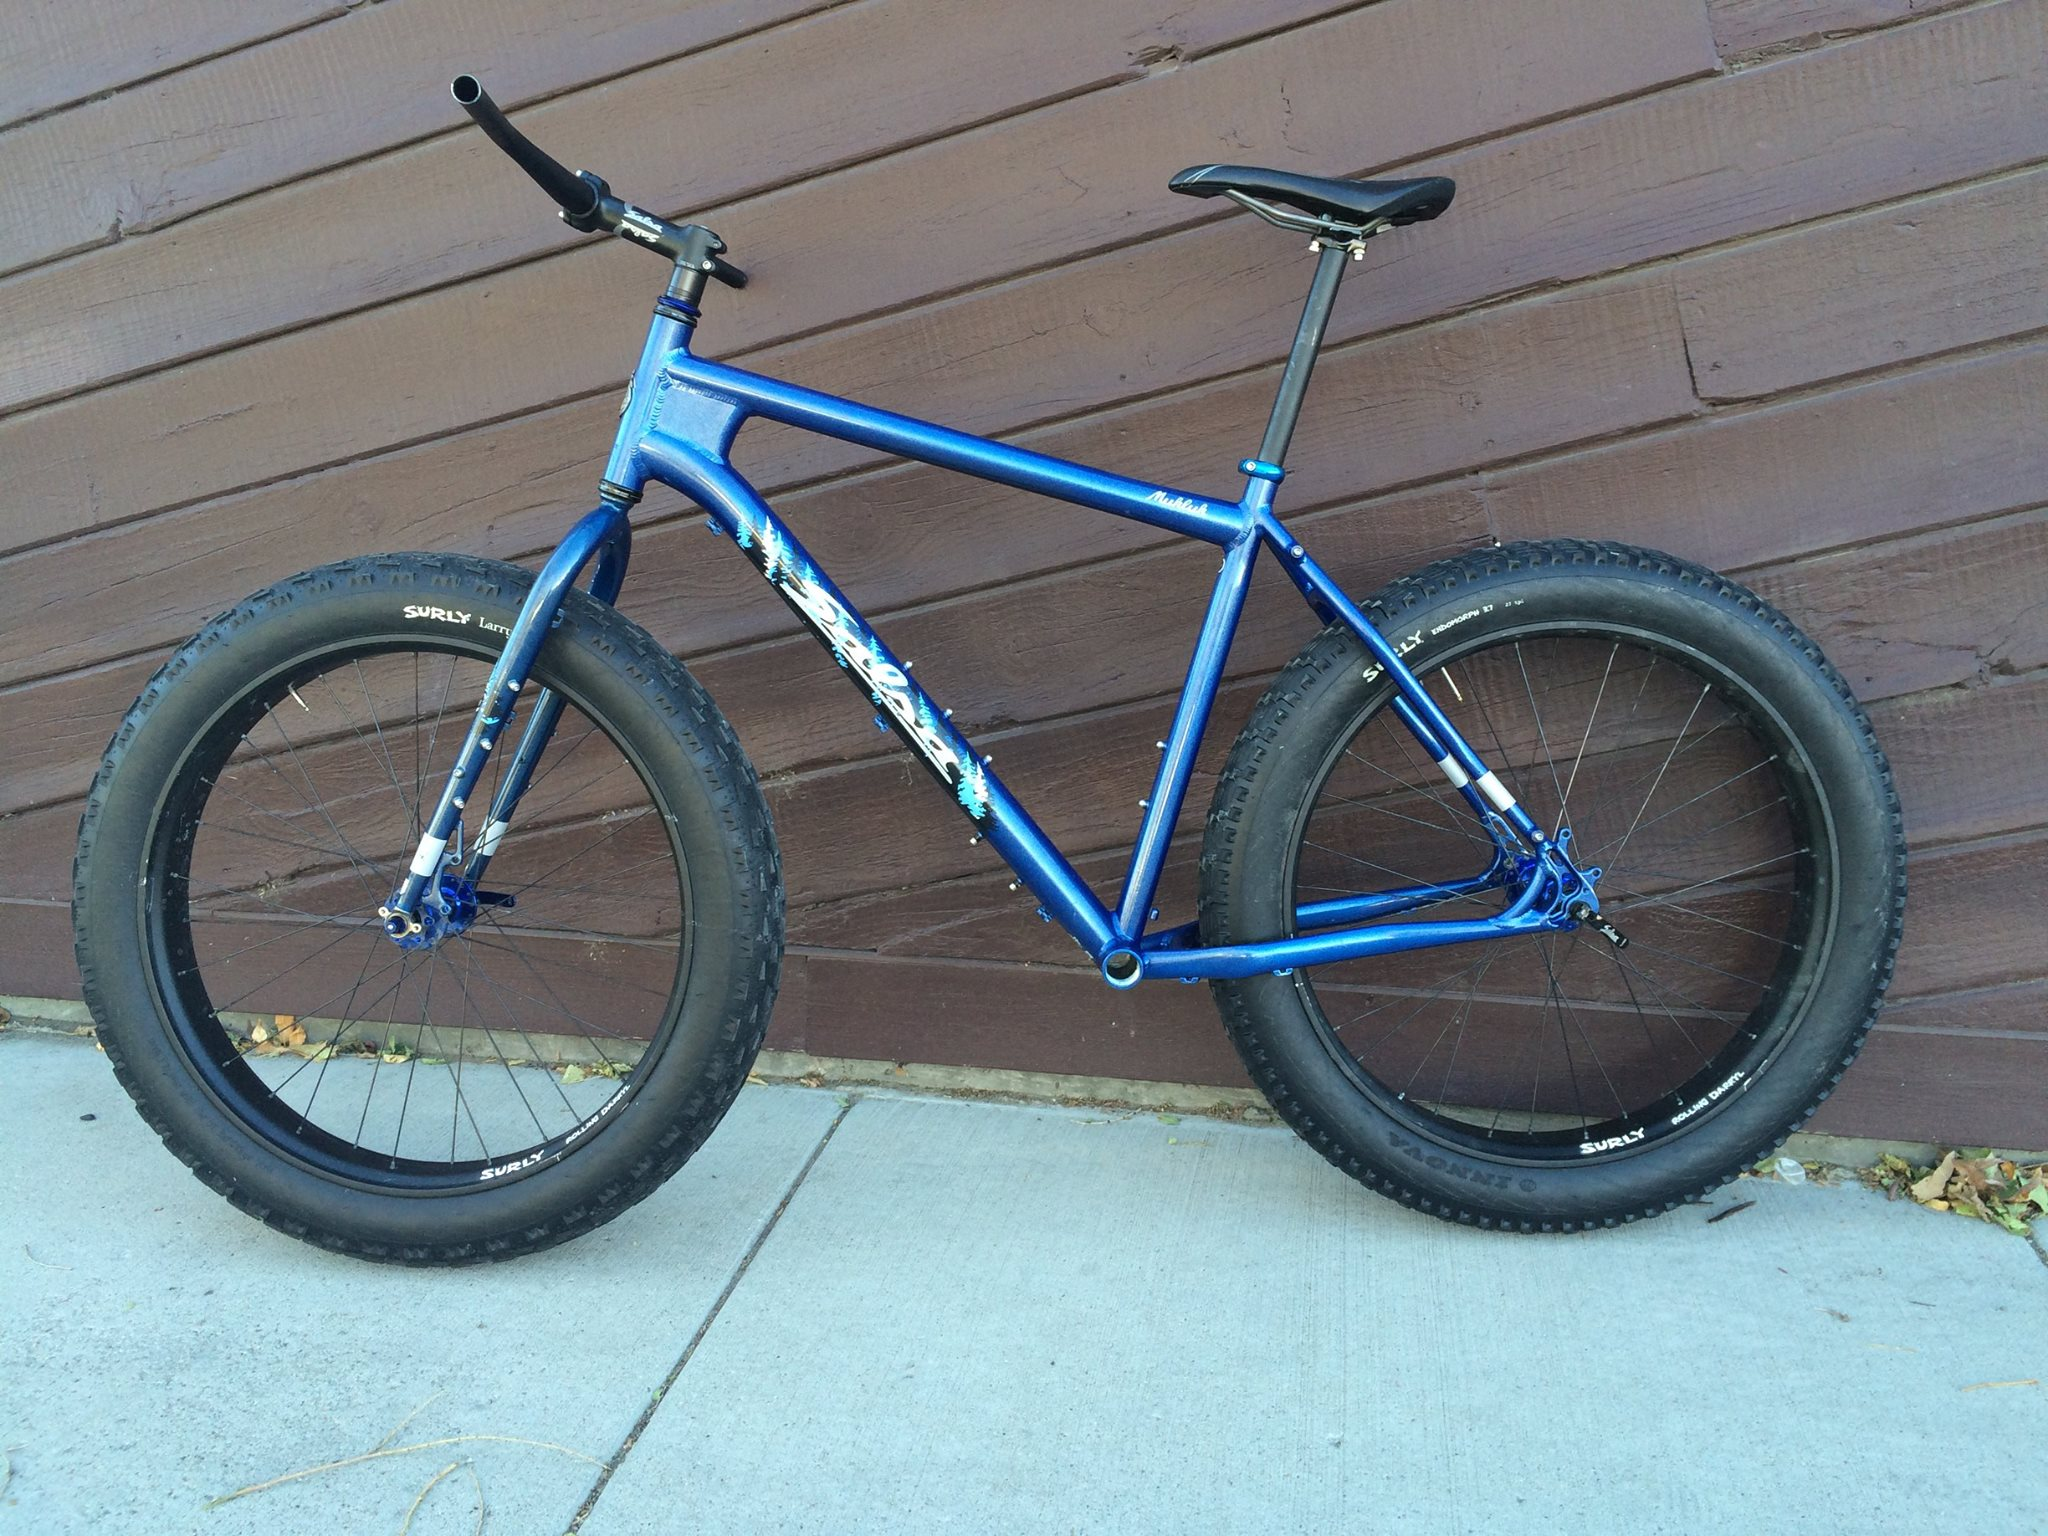 How To Buy a Dependable, Used Fat Bike for Under $1,000